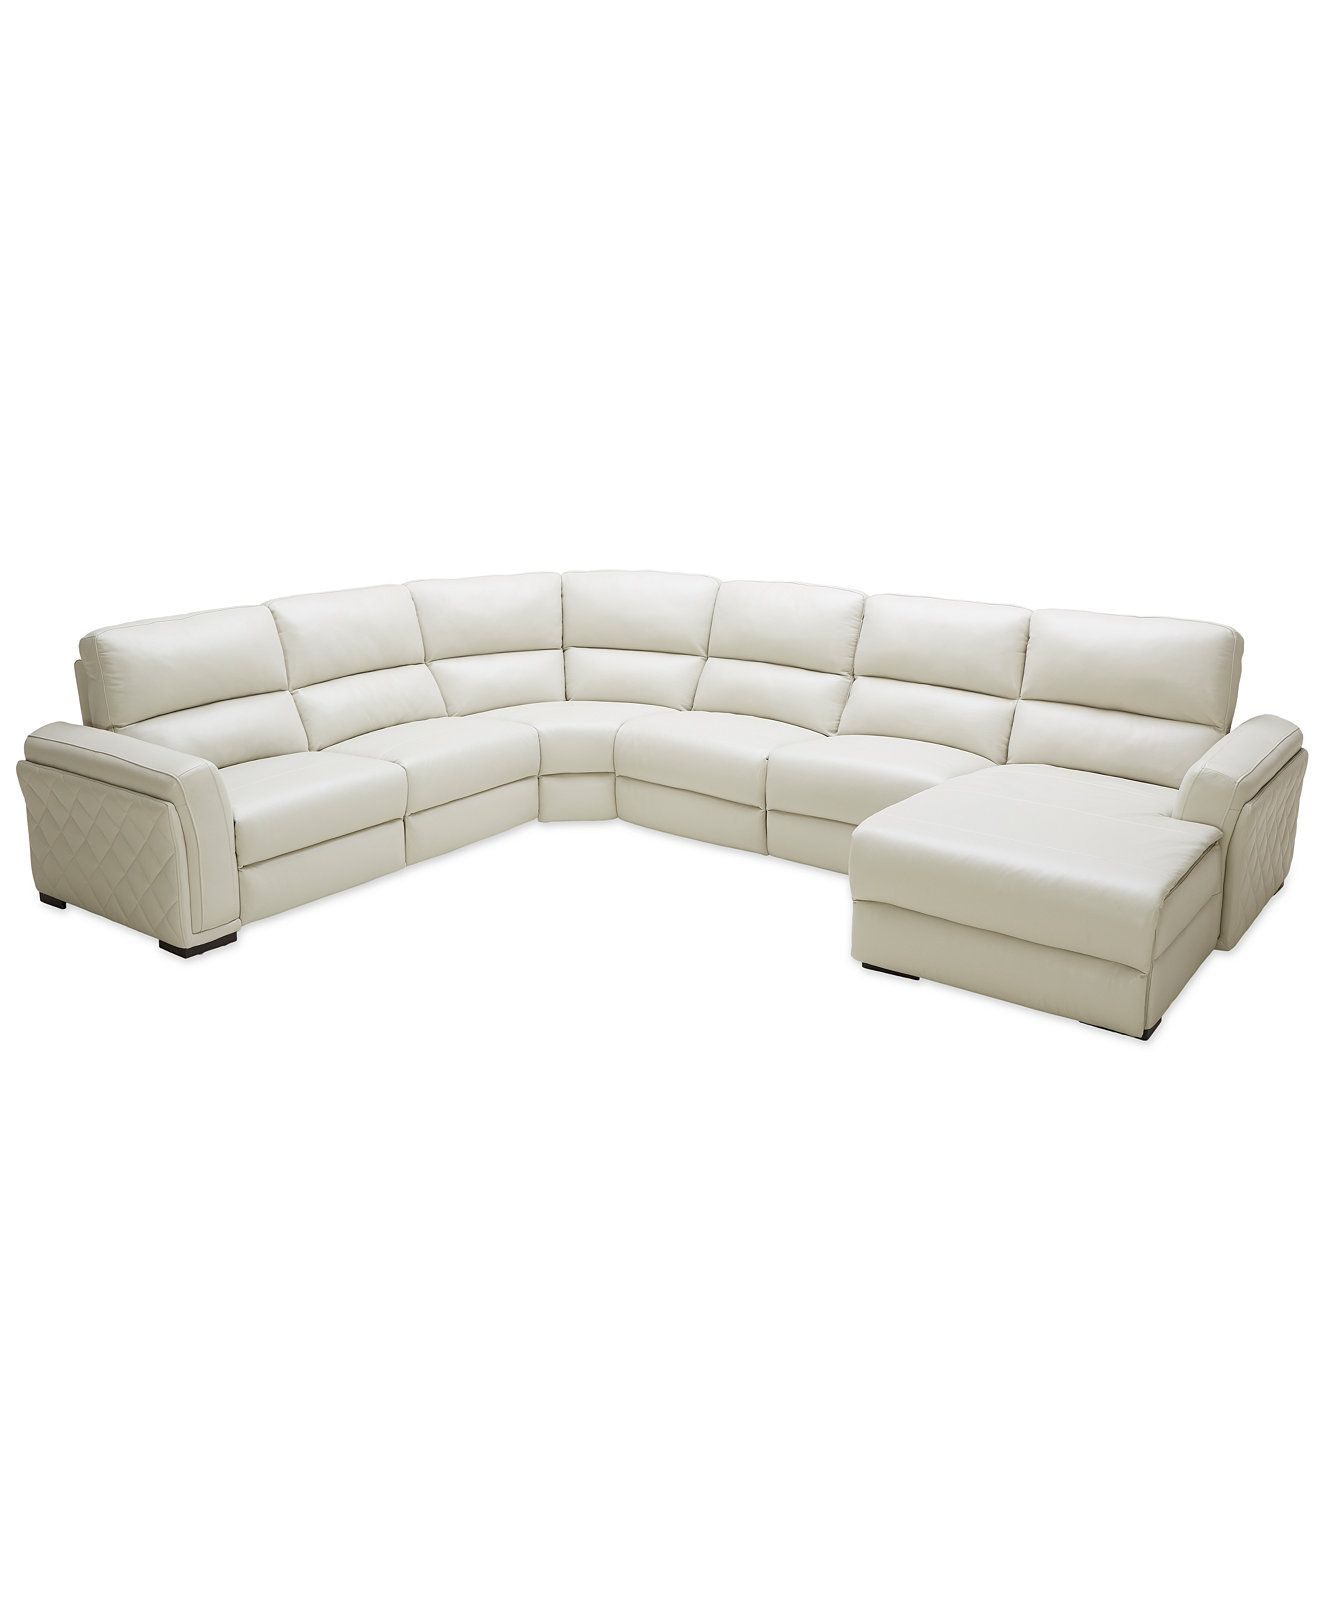 Jessi 6 Pc Leather Sectional Sofa With Chaise And 2 Power Recliners,  Created For Macyu0027s